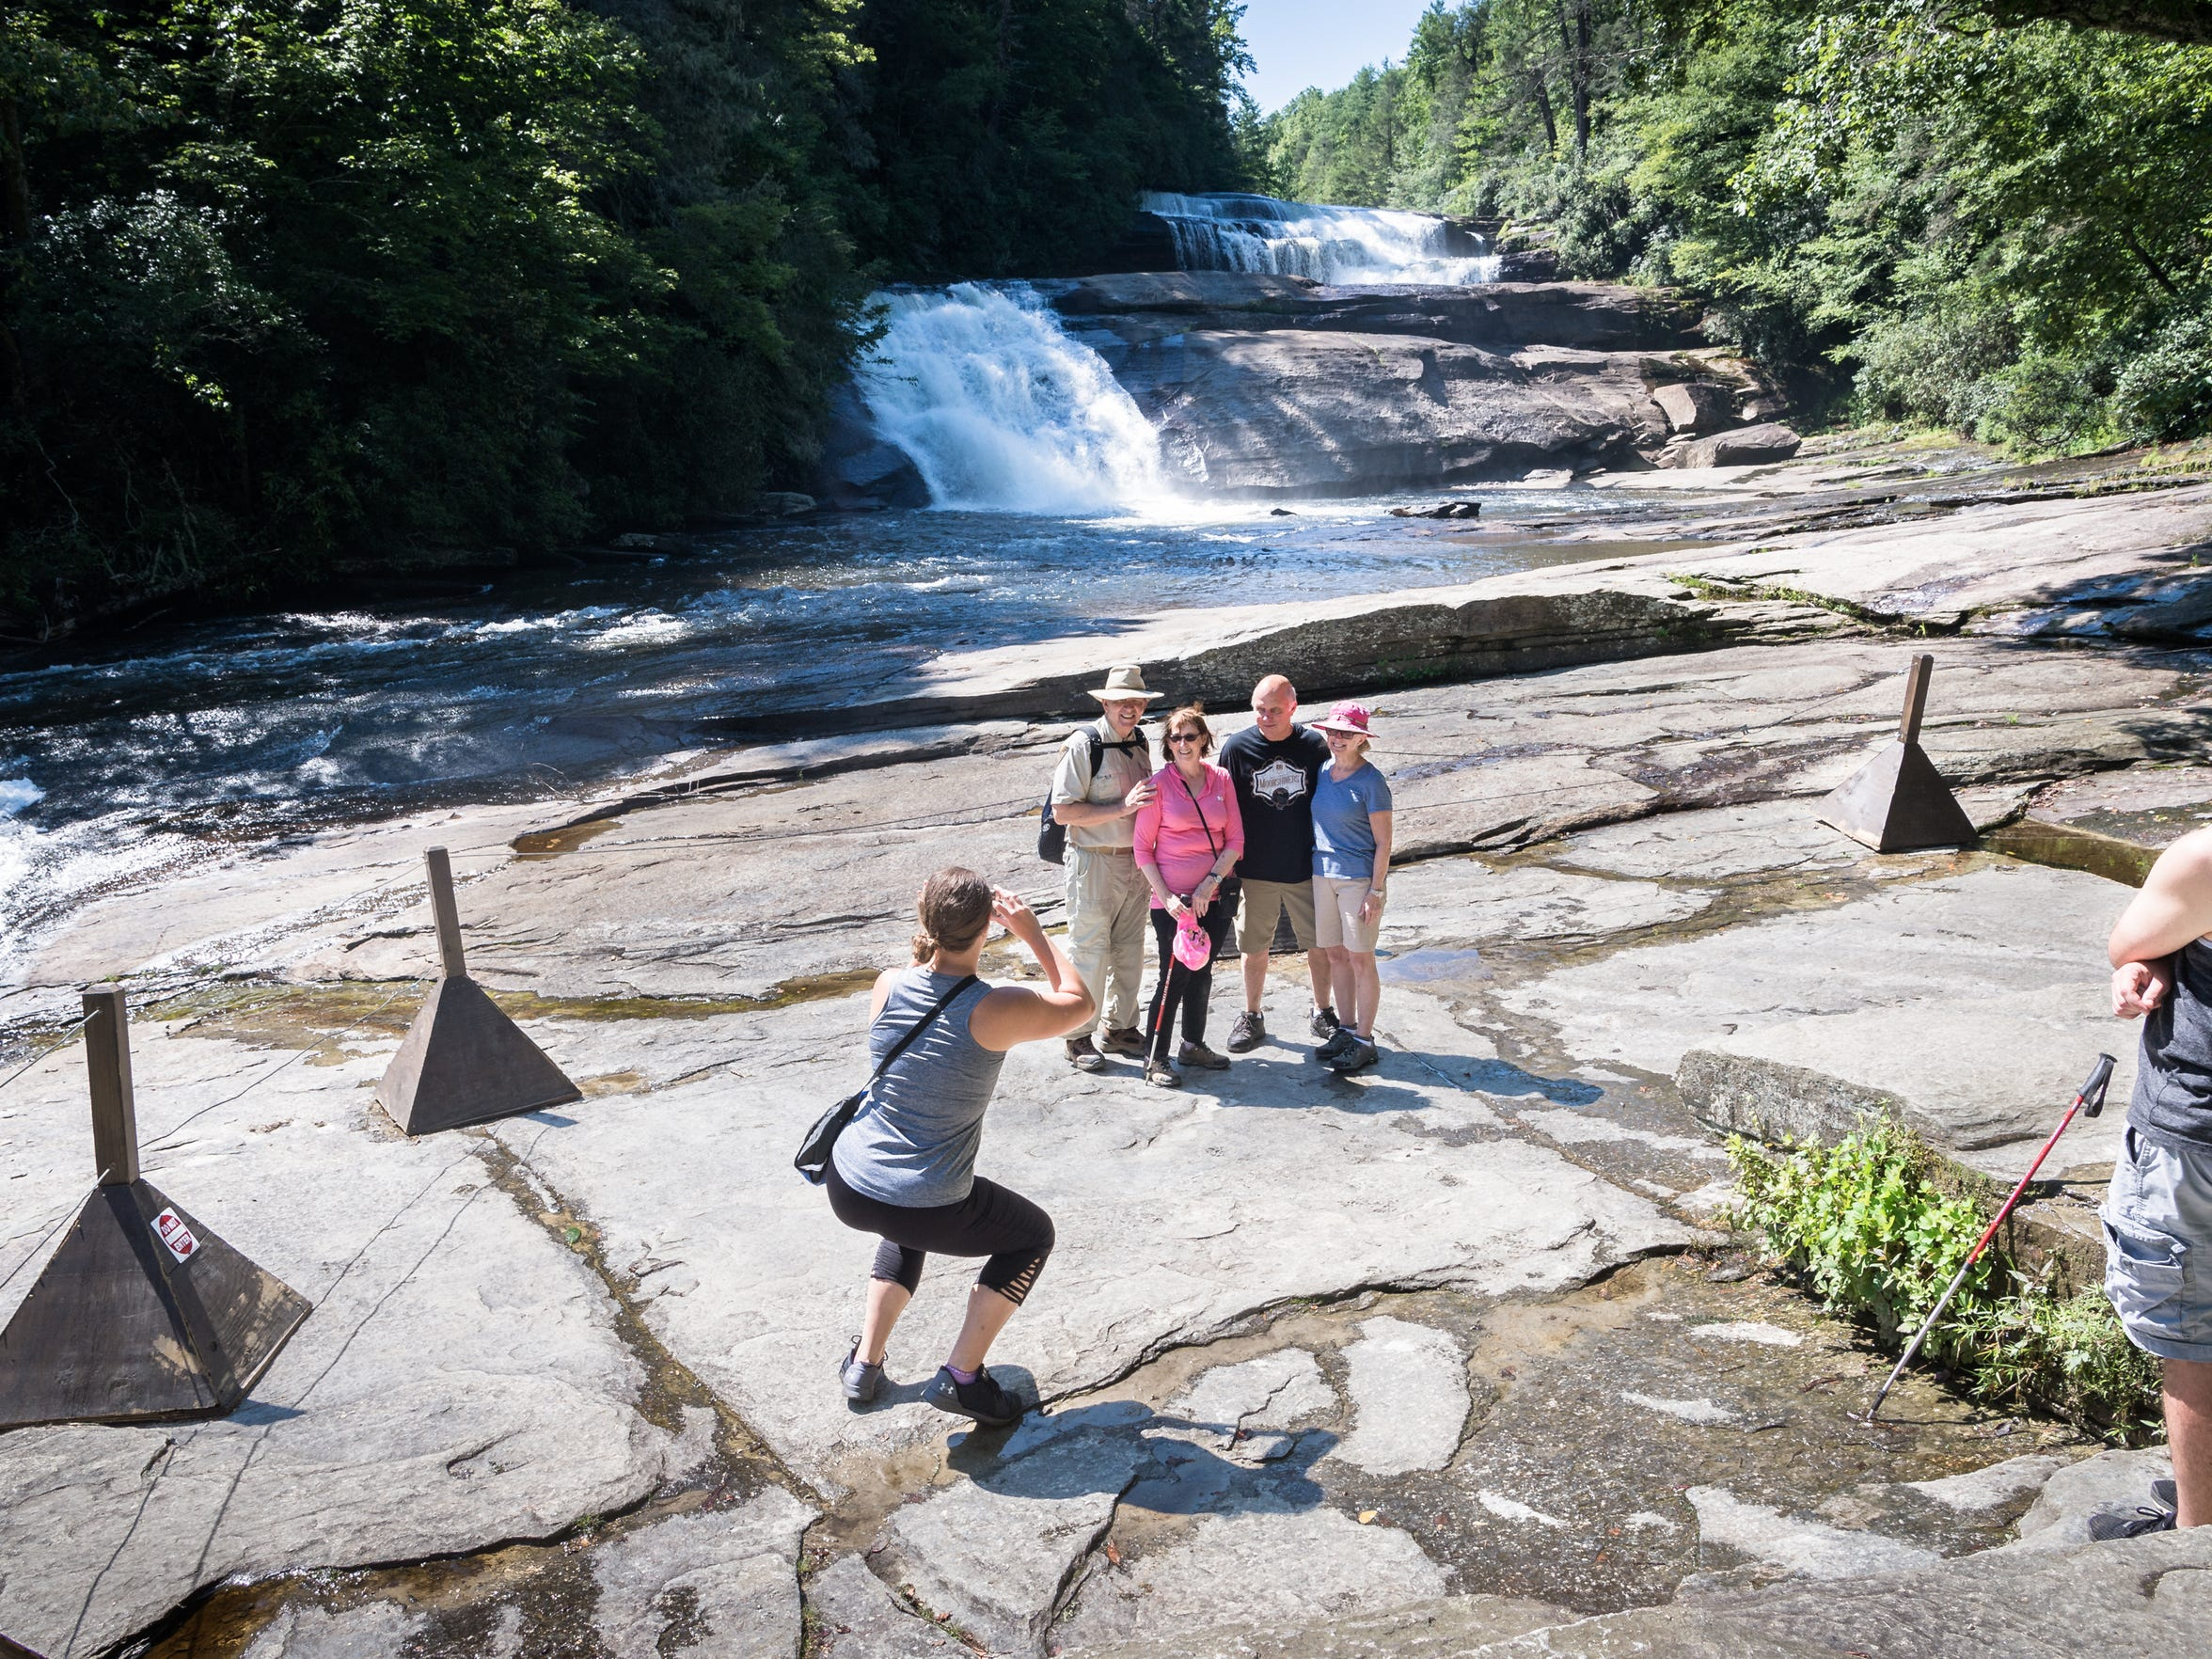 Visitors to Triple Falls in DuPont State Recreational Forest, view the falls from the roped-in viewing area at the base of the falls Thursday, July 26, 2018.